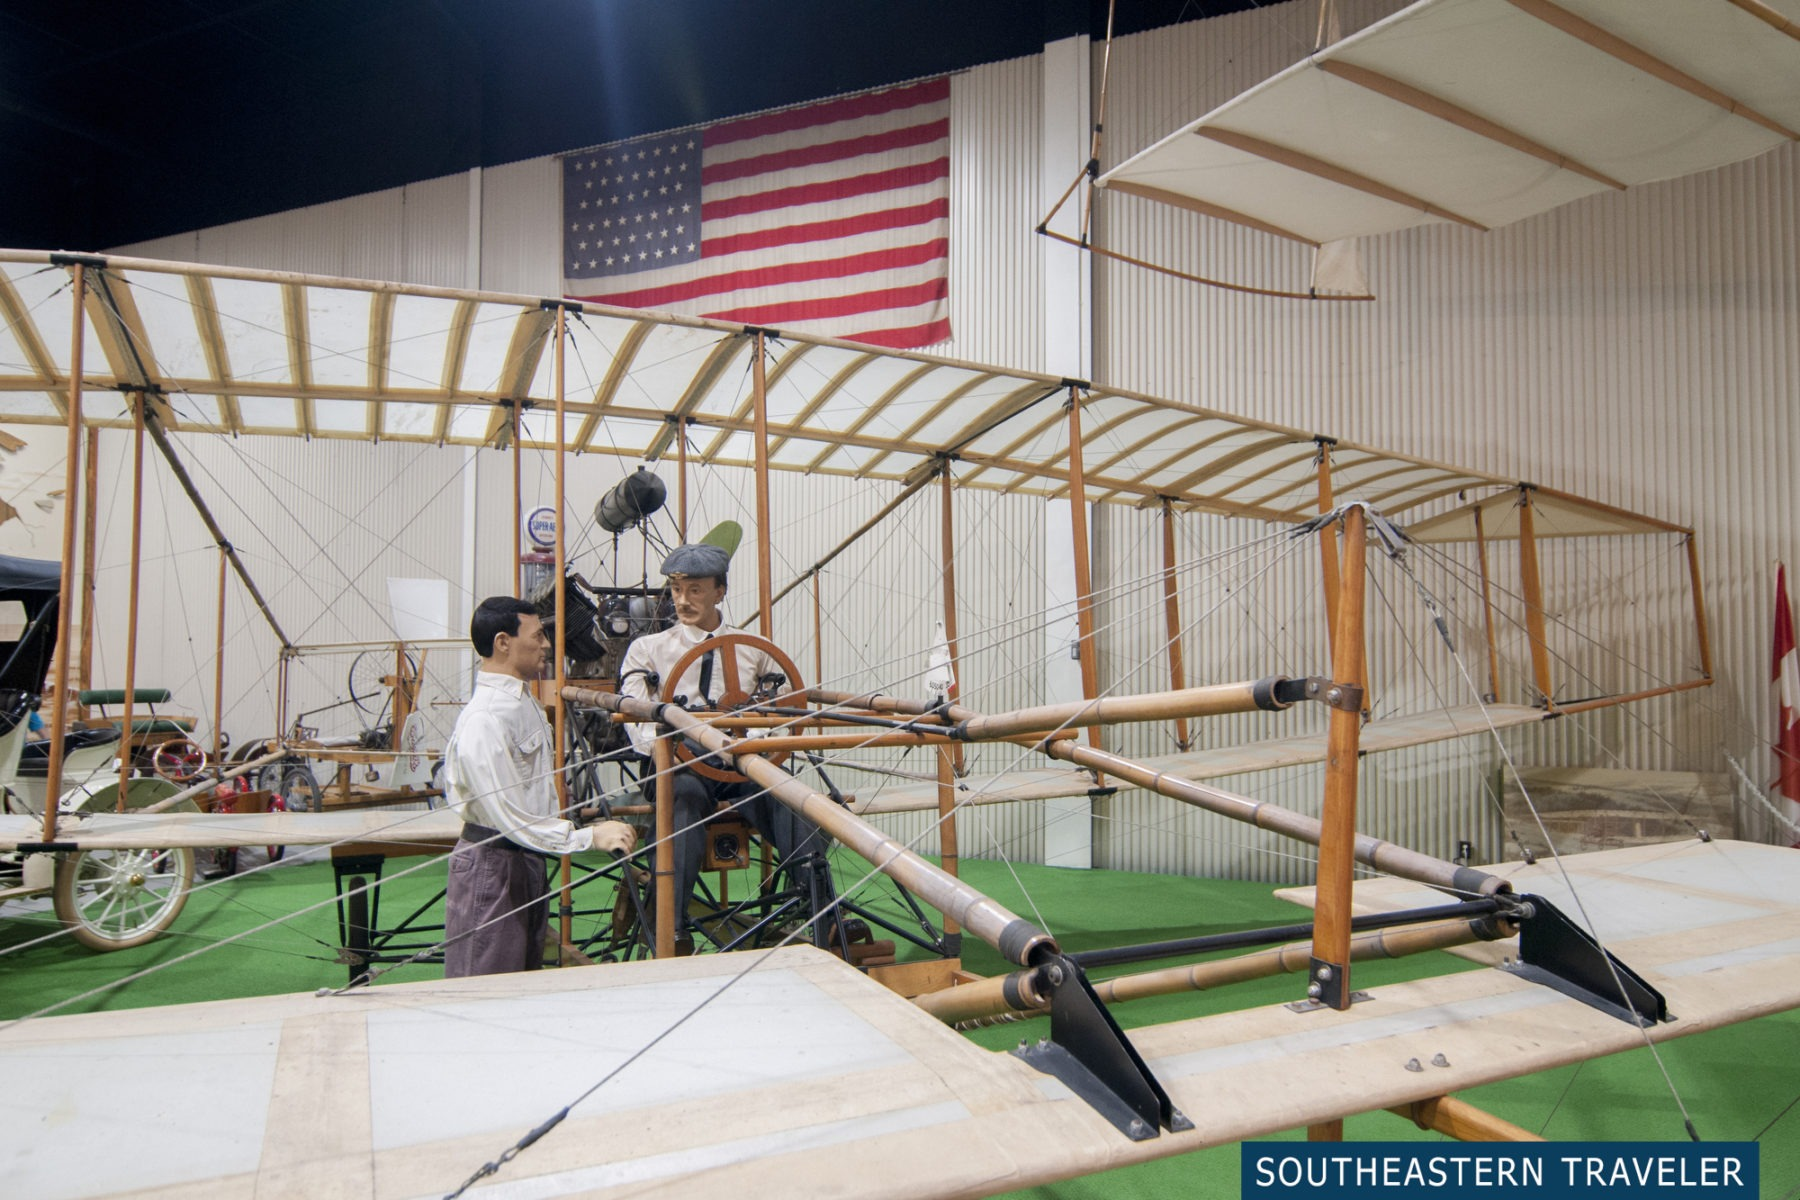 A replica of a plane on display at the Glenn Curtiss Aviation Museum in Hammondsport, New York